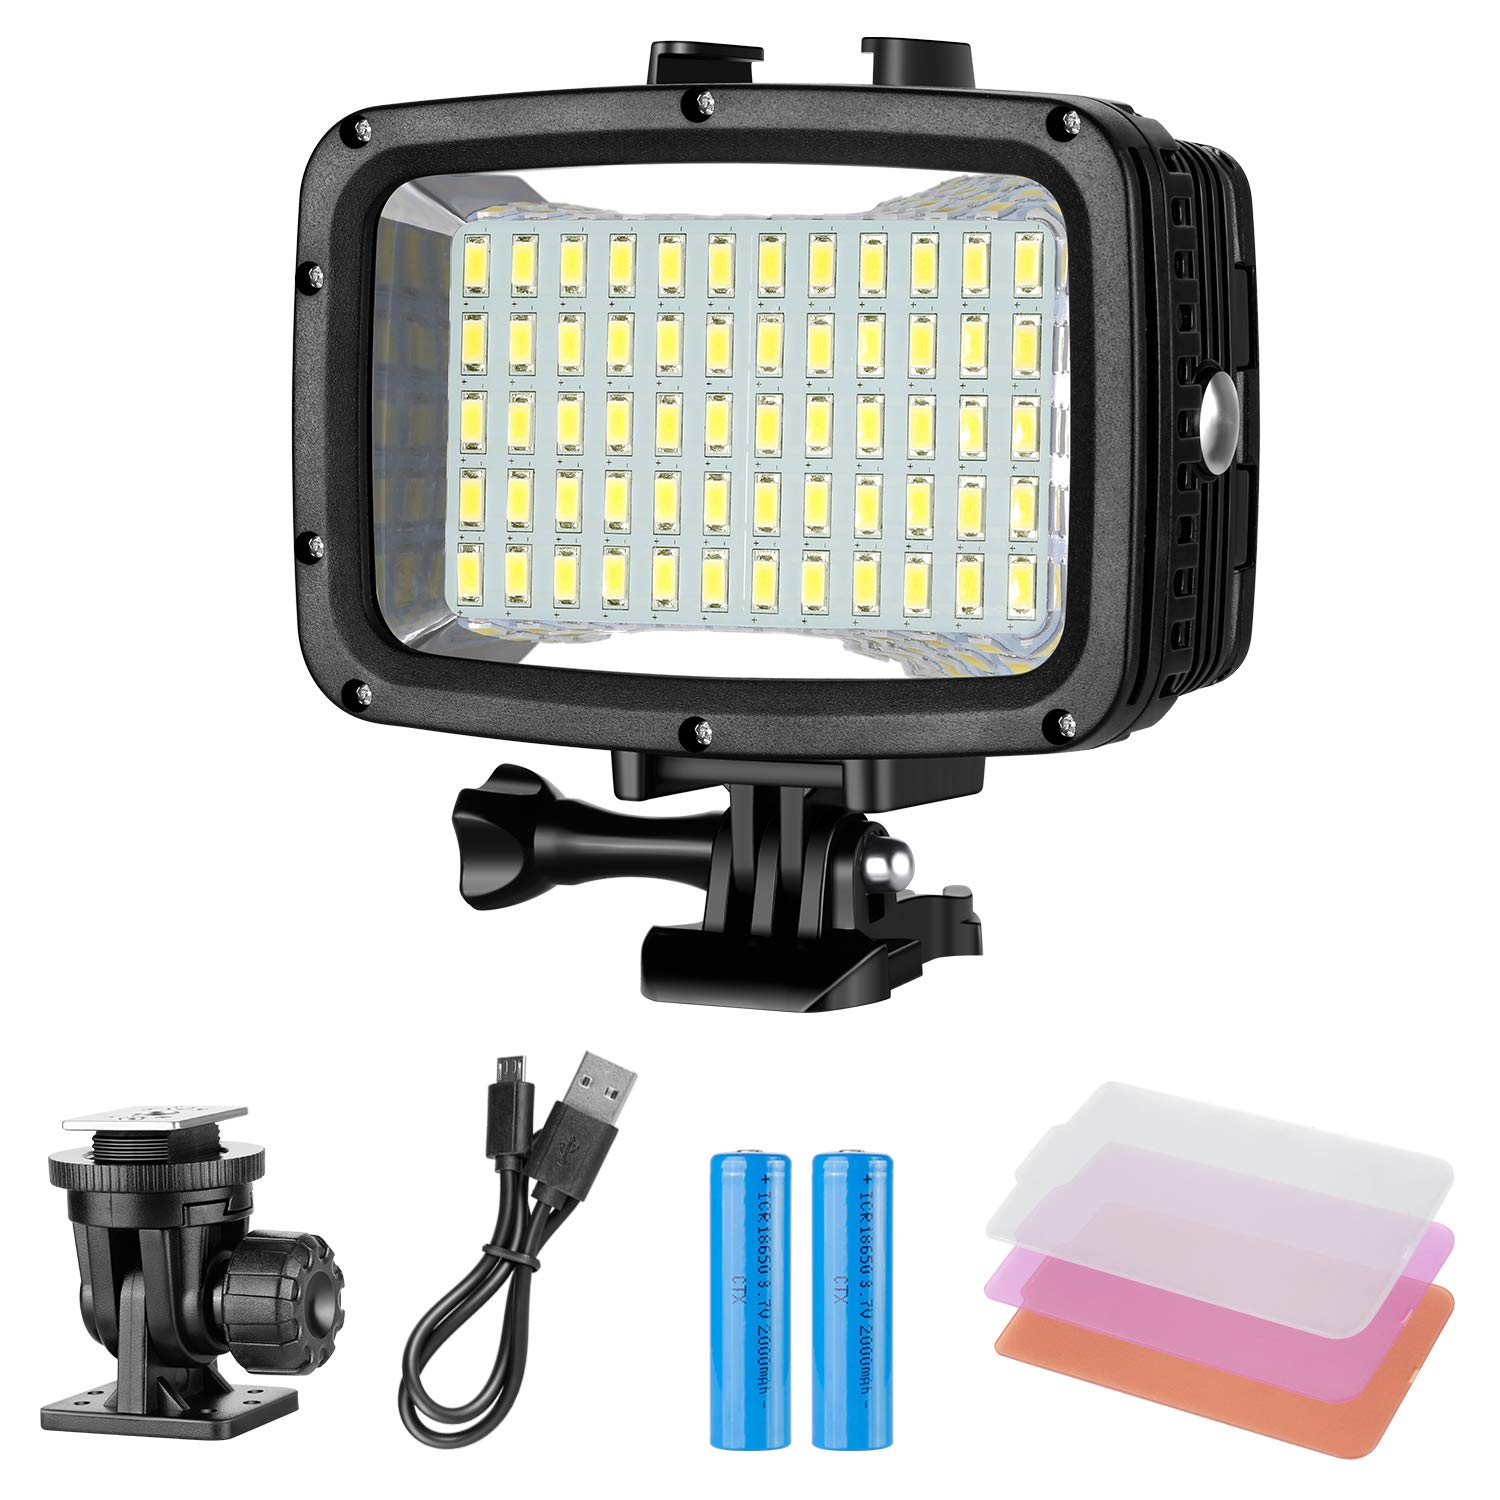 Neewer Underwater Lights Dive Light 60 LED Dimmable Waterproof LED Video Light 131feet/40m for GoPro Hero 6 5 4 Hero Session Canon Nikon Pentax and Other Action and DSLR Cameras (Battery Included)